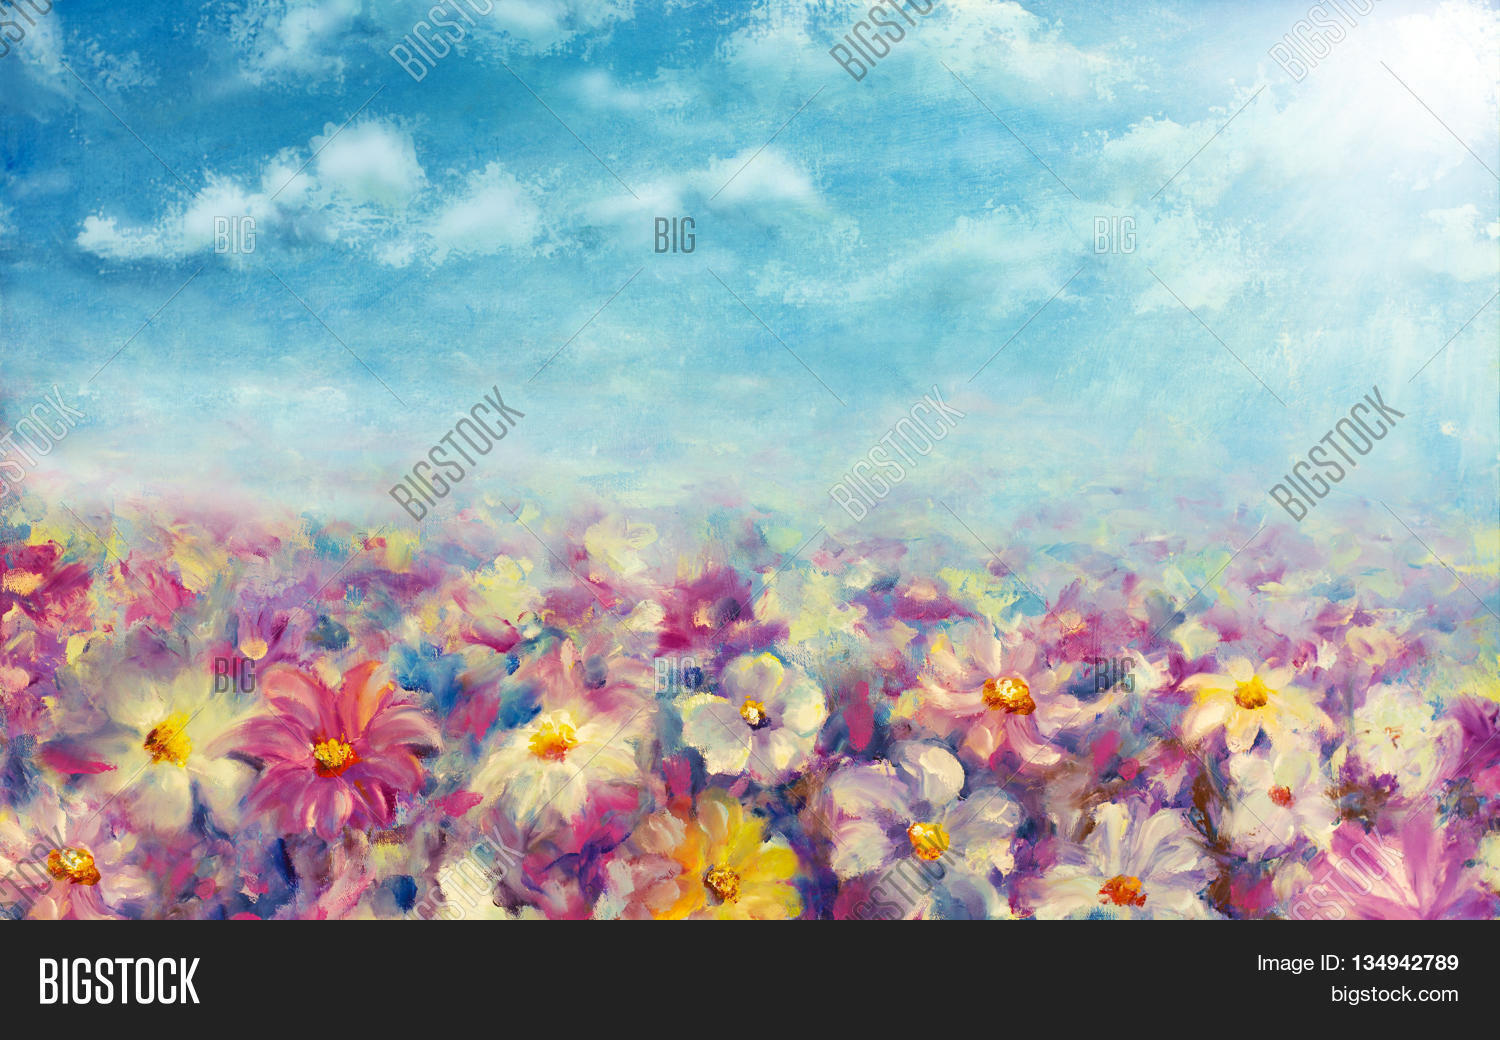 Flowers Field At Sunrise Flower Oil Painting Background Landscape Of Multicolored Impressionist